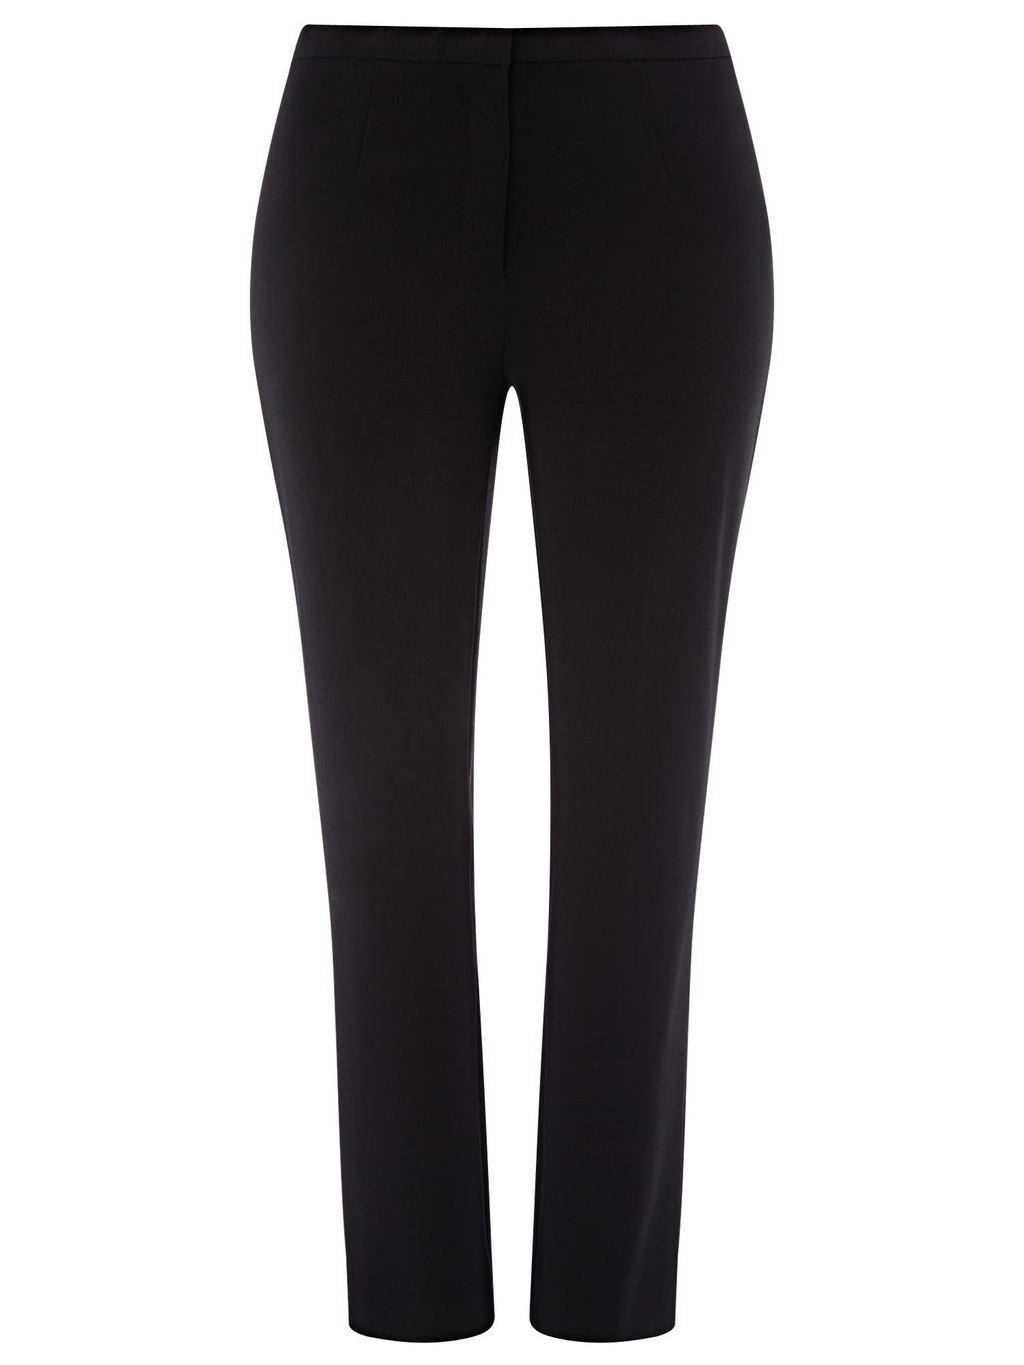 Tapered Slim Leg Trousers, Black - length: standard; pattern: plain; waist: mid/regular rise; predominant colour: black; occasions: casual, work, creative work; fibres: polyester/polyamide - 100%; fit: slim leg; pattern type: fabric; texture group: woven light midweight; style: standard; season: s/s 2016; wardrobe: basic